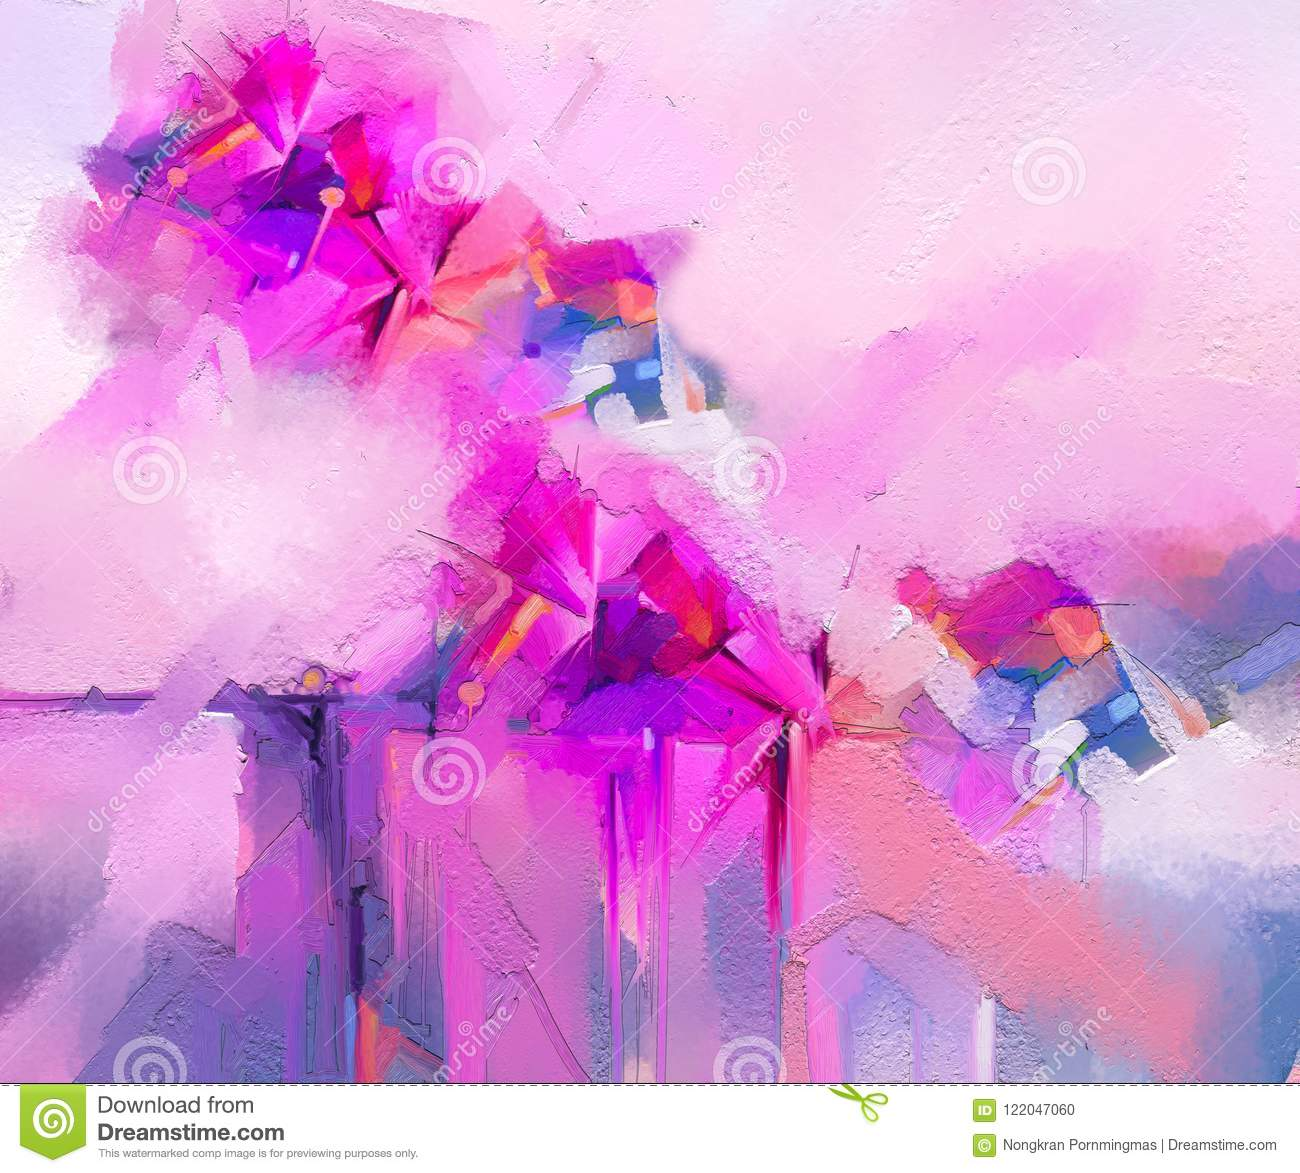 Semi- abstract image of flowers, in yellow pink and red with blue color. Modern art oil paintings for background